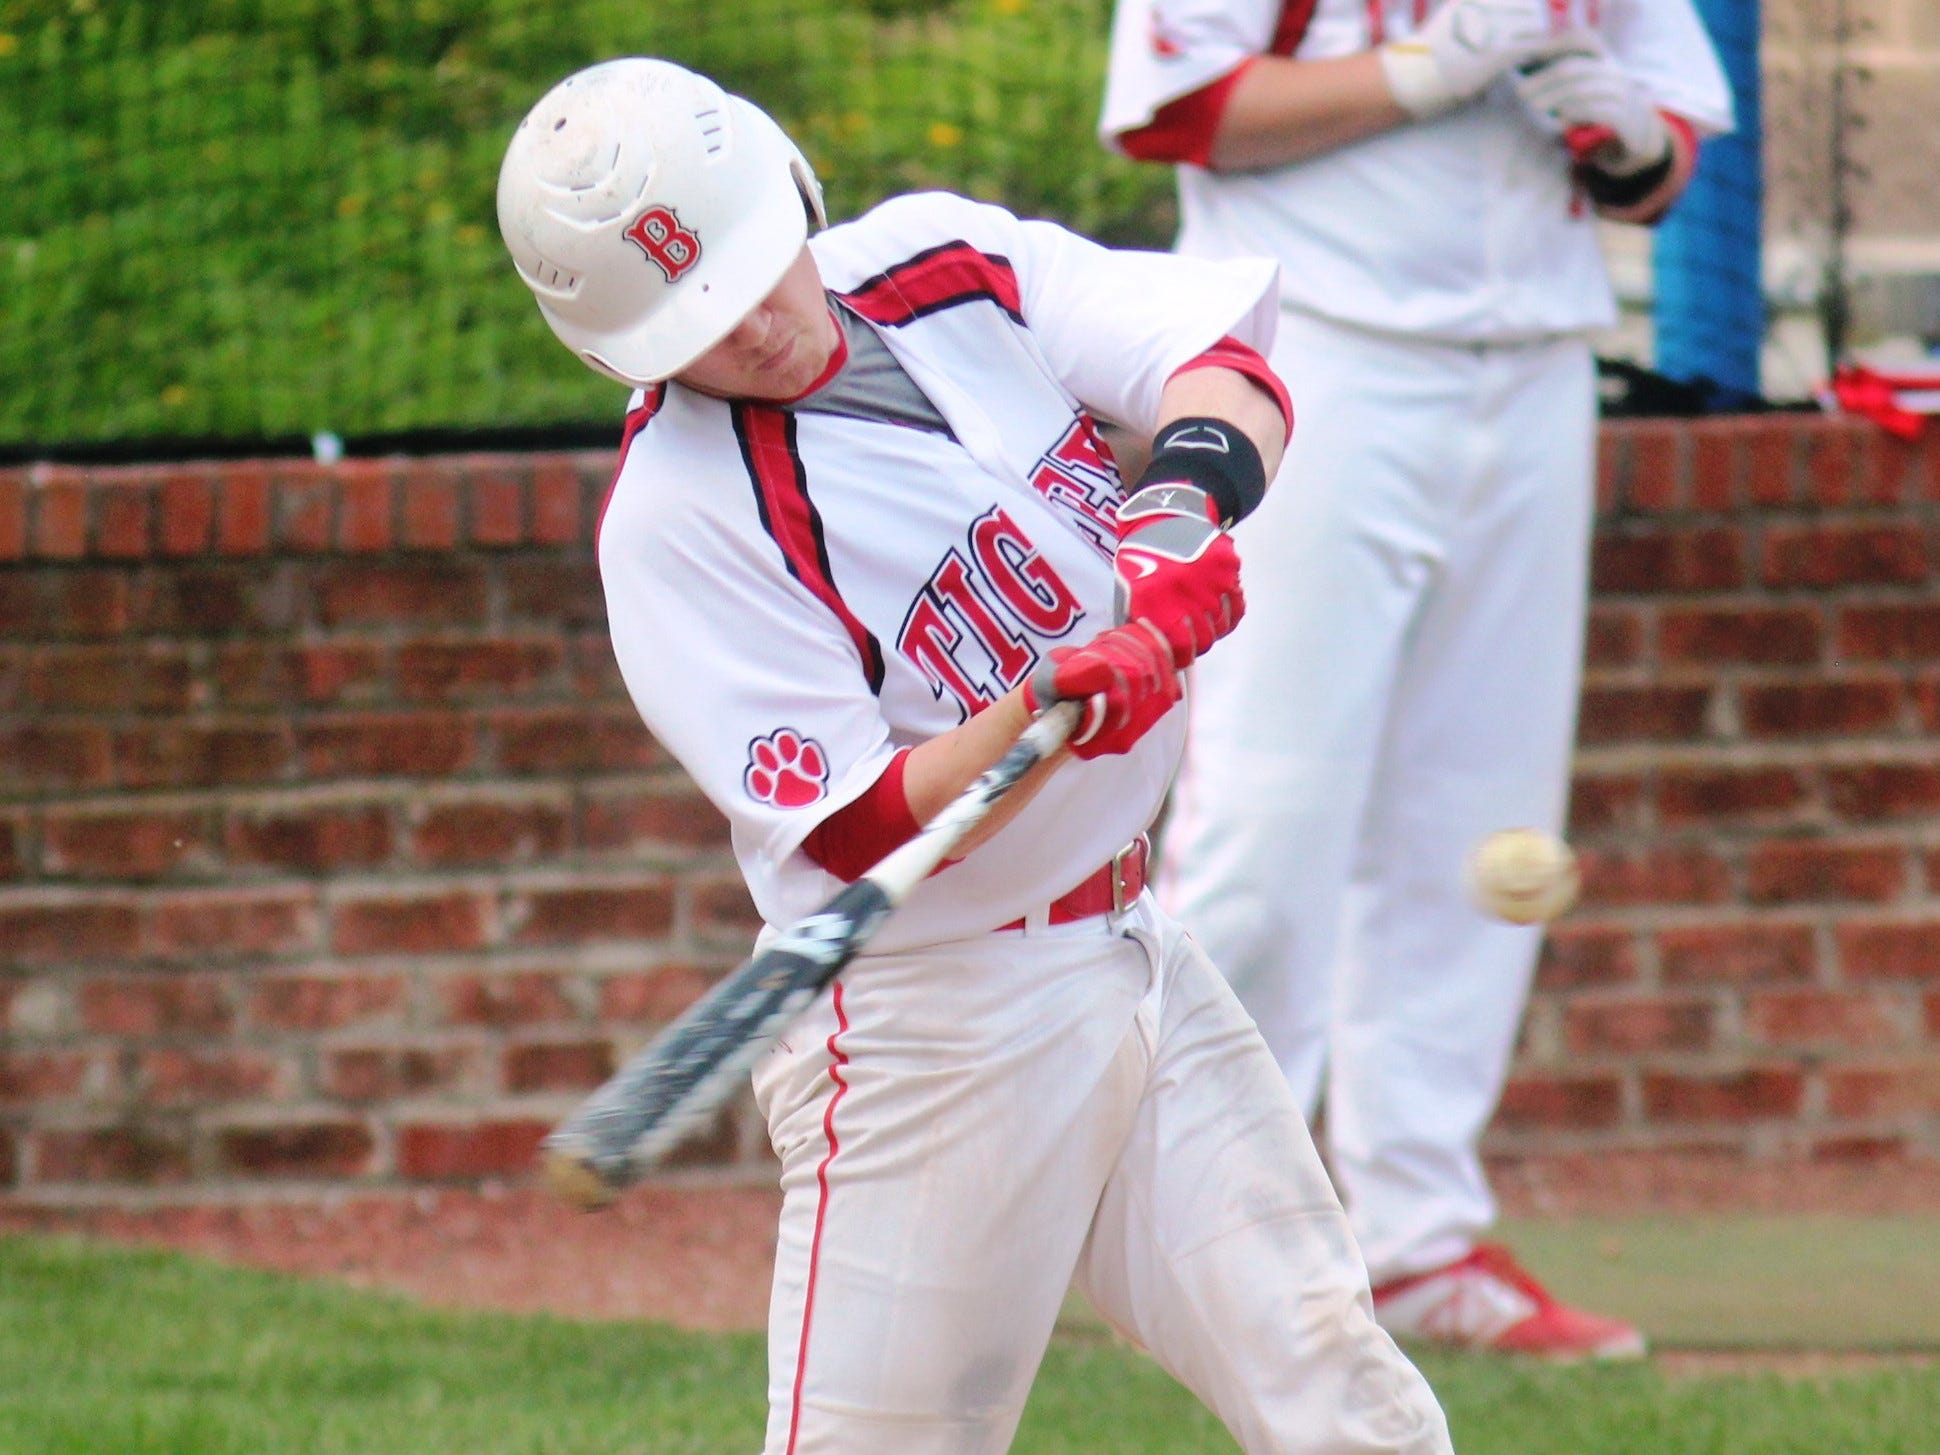 Beechwood senior Jake Schmidt hits the ball.